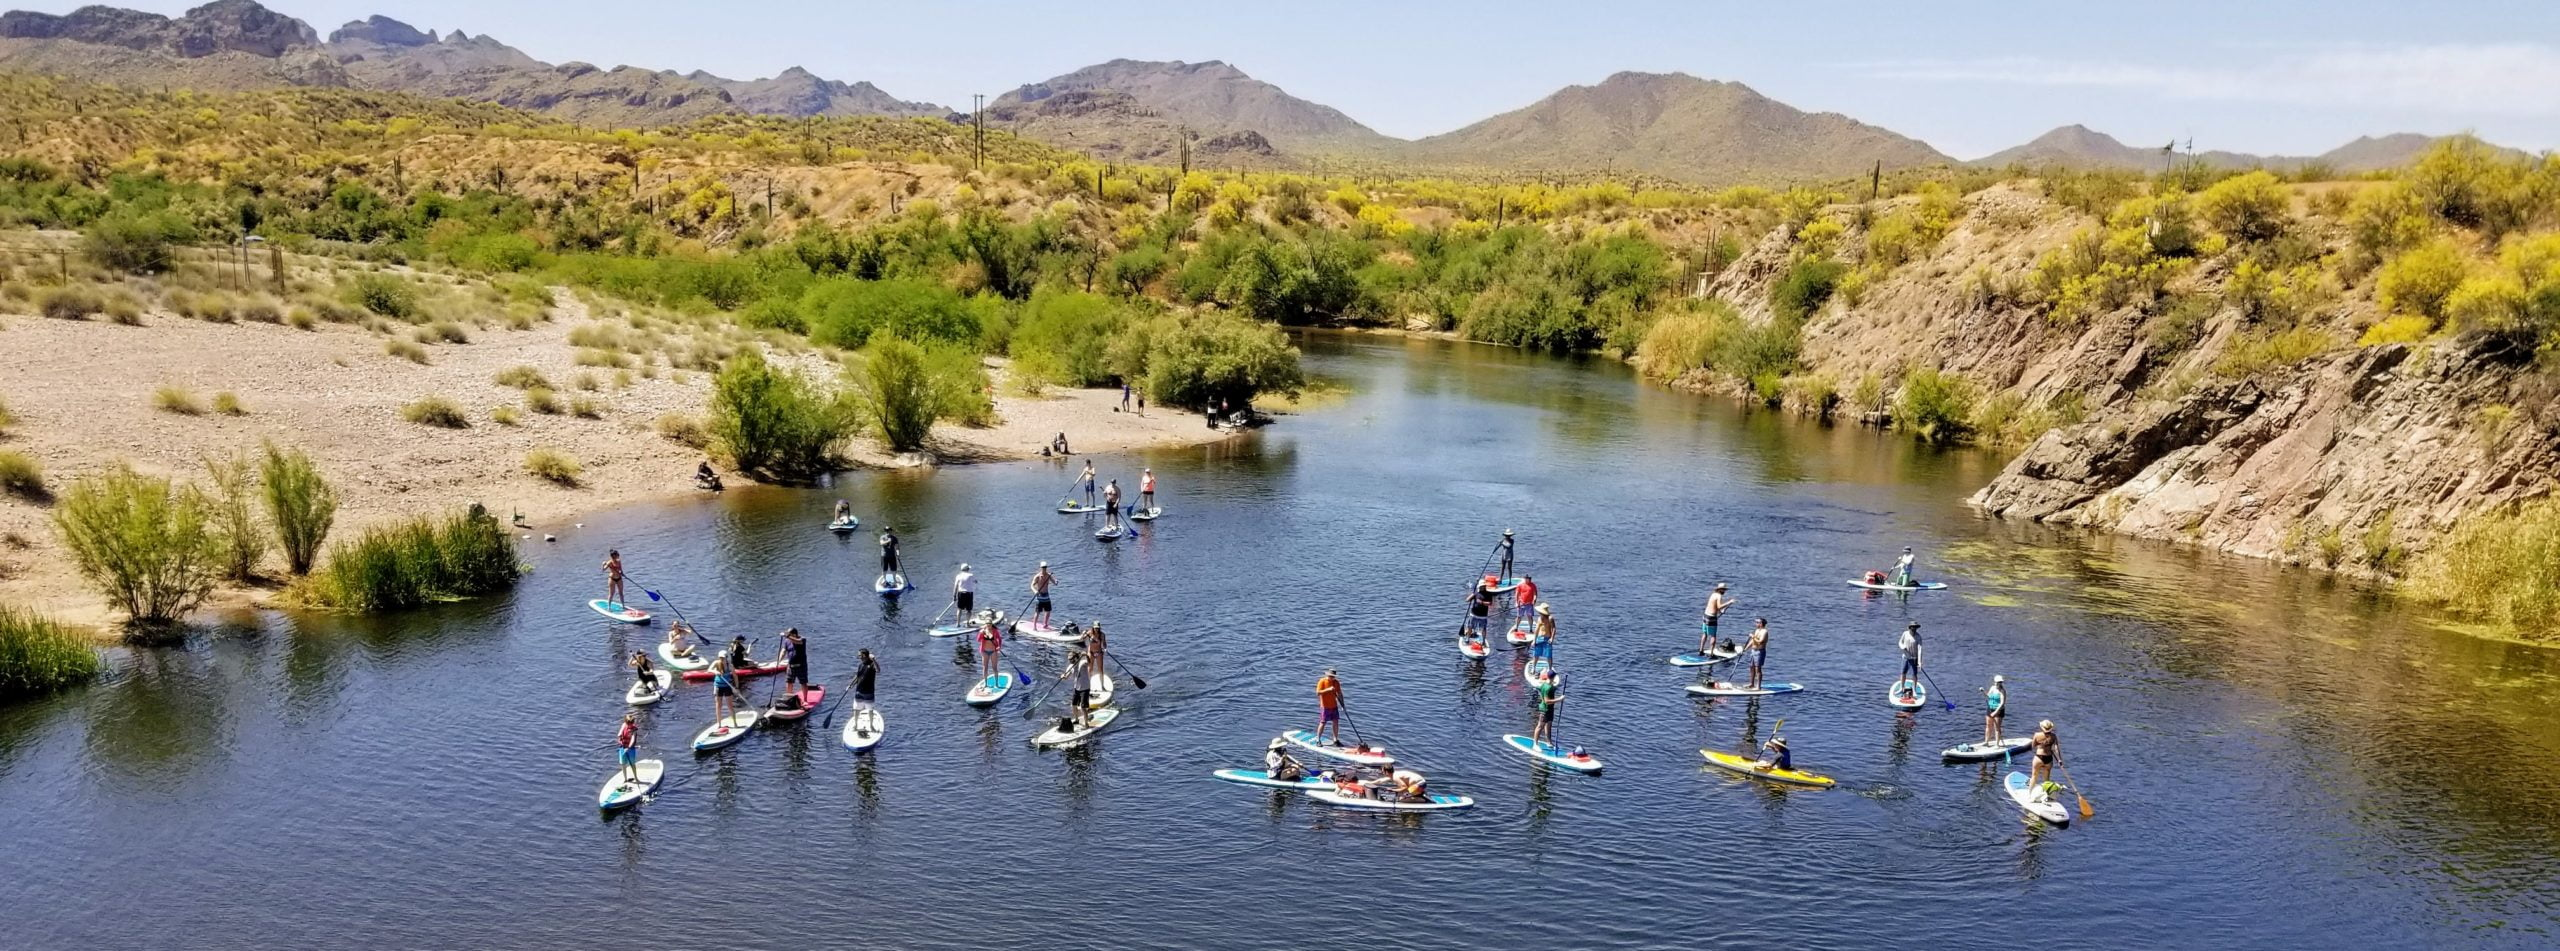 Riverbound Sports Paddle Co First of Its Kind to Become Autism Certified